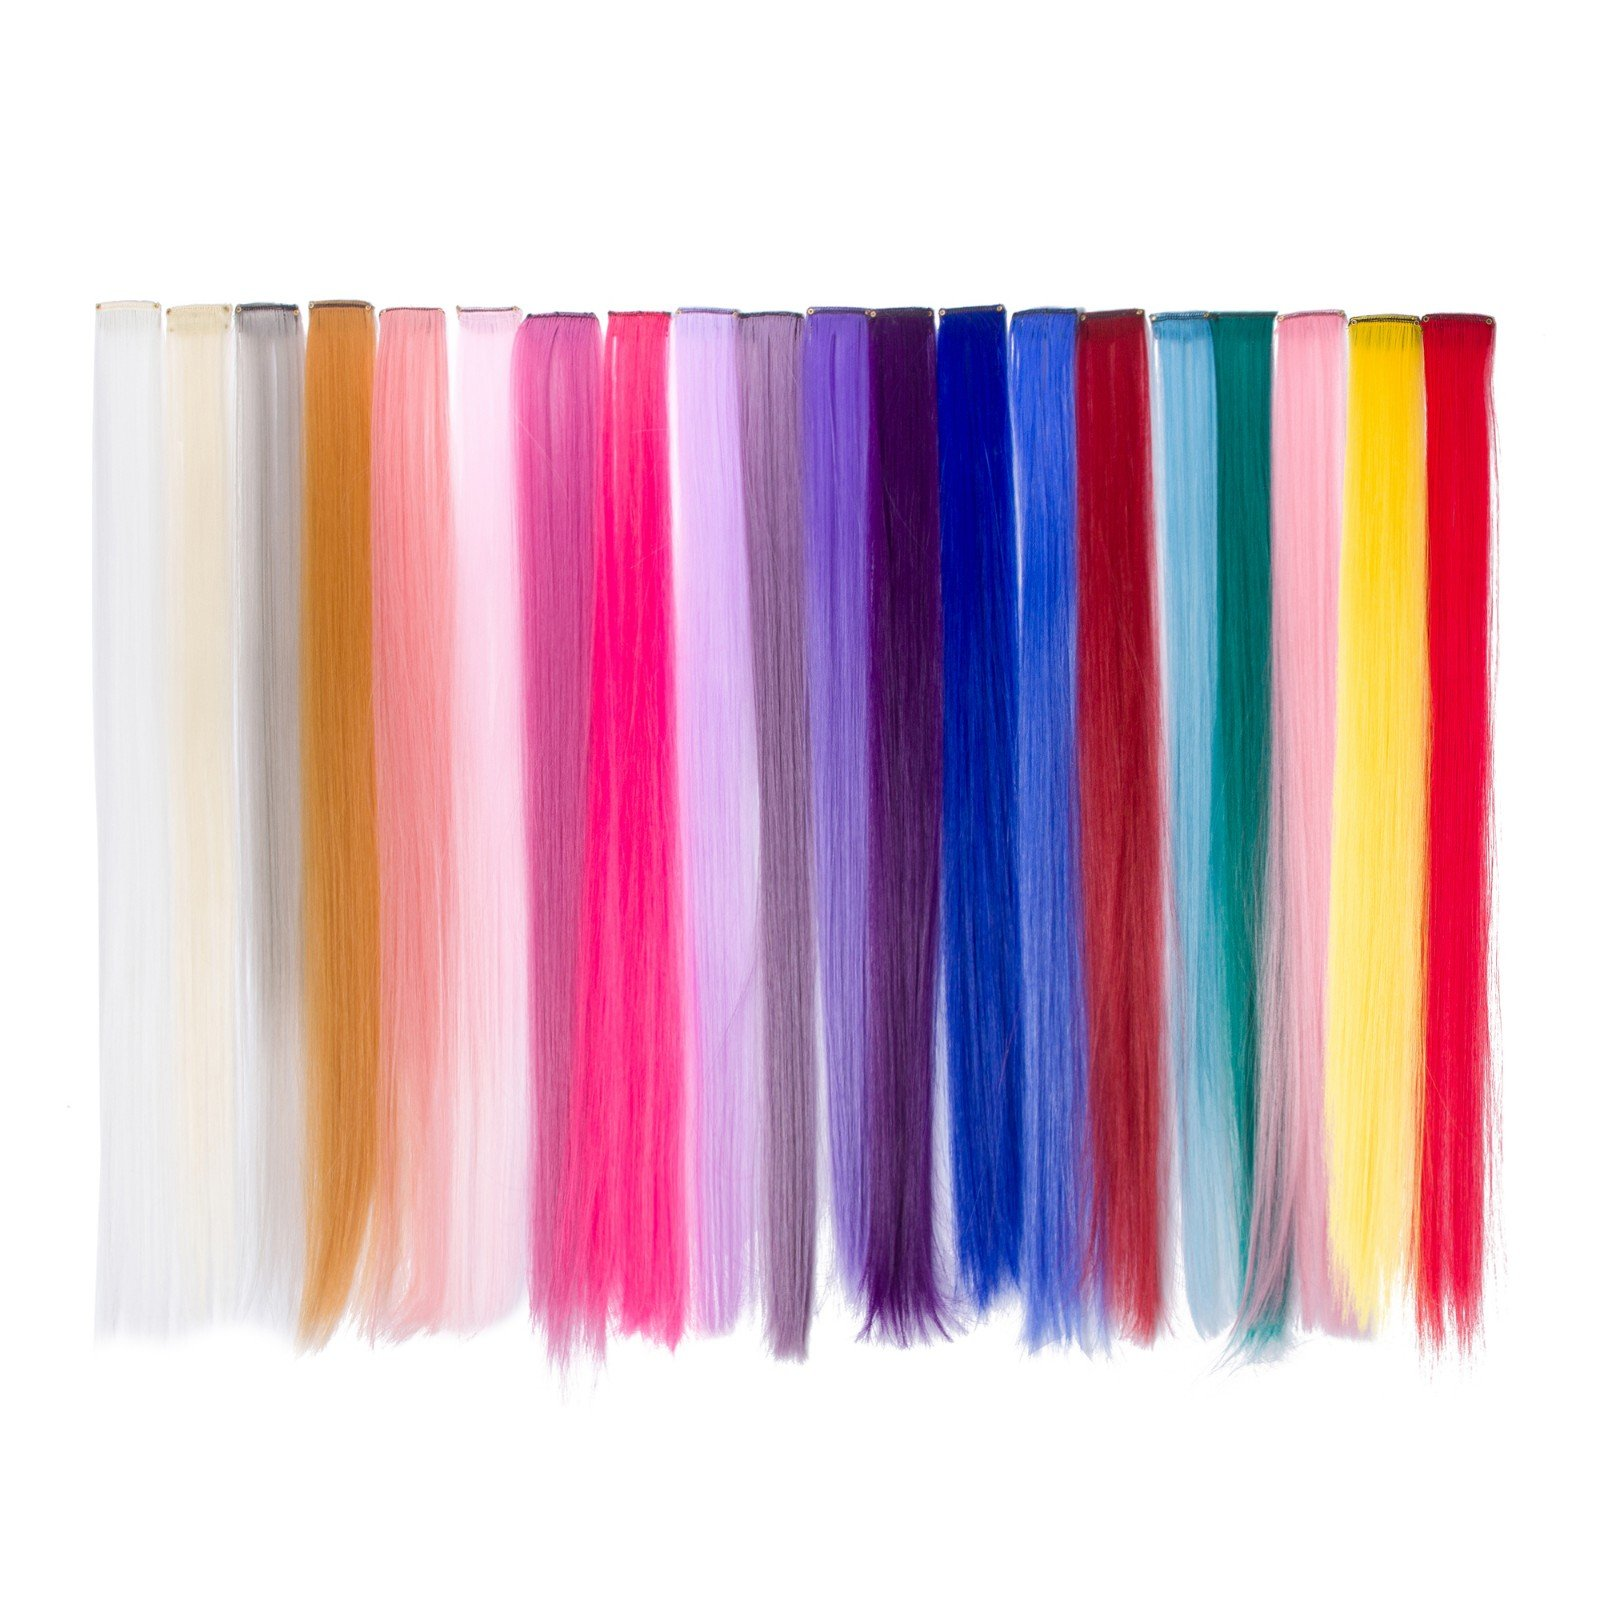 Beauty7 20 Pcs Set 19.7 inch Pelucas Colores Lacio Clip Cosplay Fiestas Party Pelucas Disfraz Extensiones